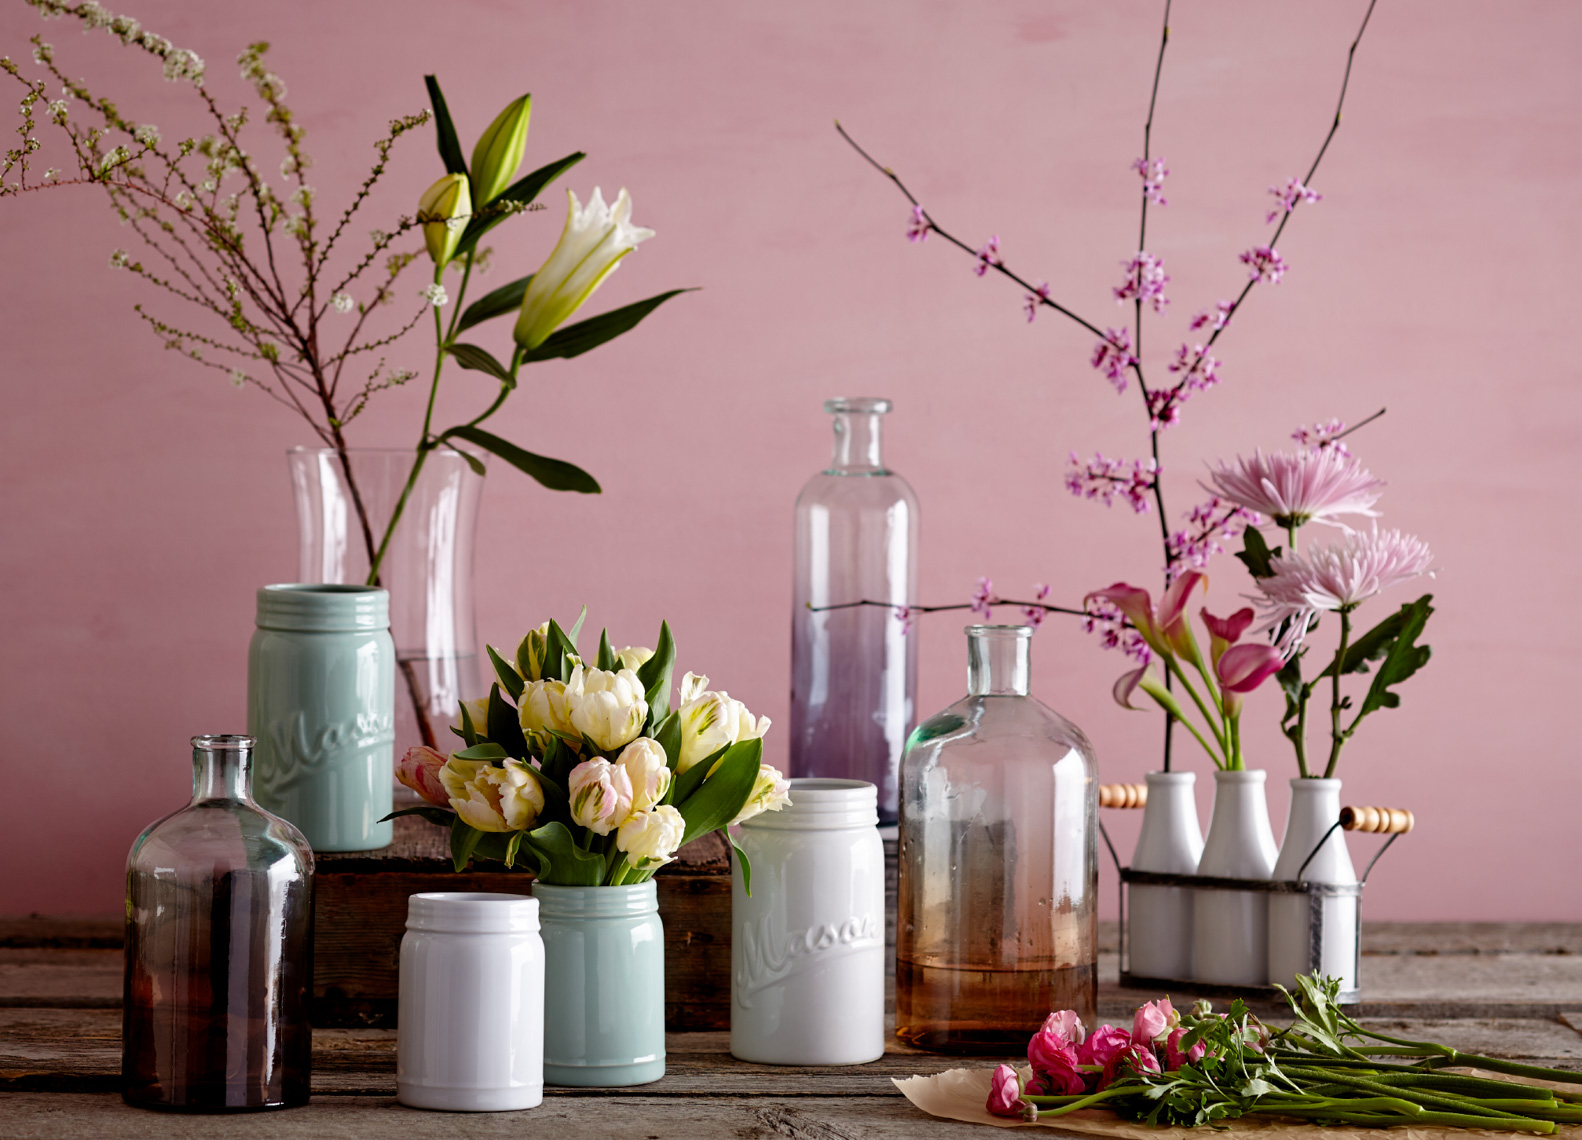 Glass vases and ceramic vases with flowers and branches hilip Harvey Photography, San Francisco, California, still life, interiors, food, lifestyle and product photography